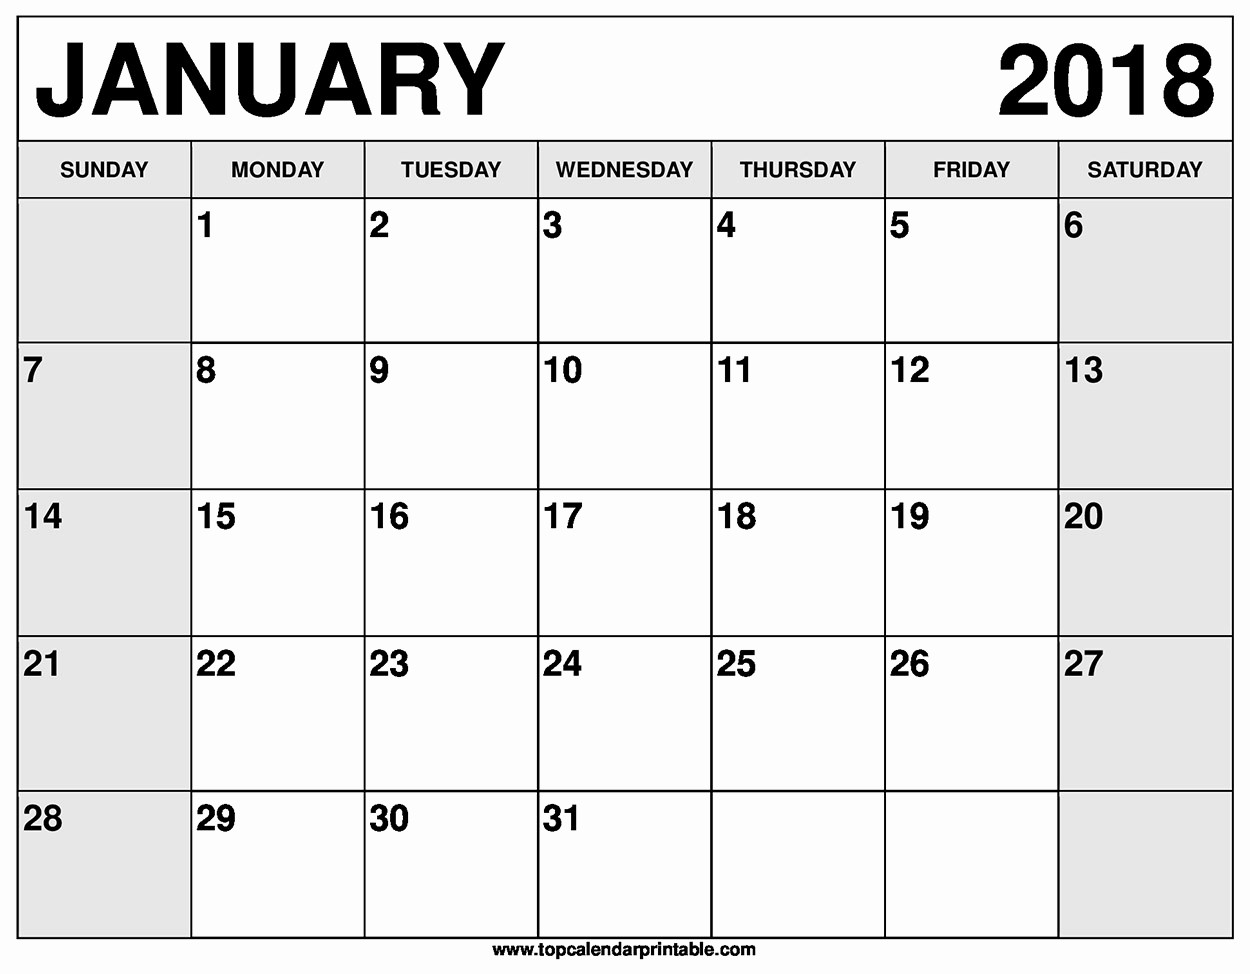 Blank January 2018 Calendar Printable Unique Blank January 2018 Calendar Printable